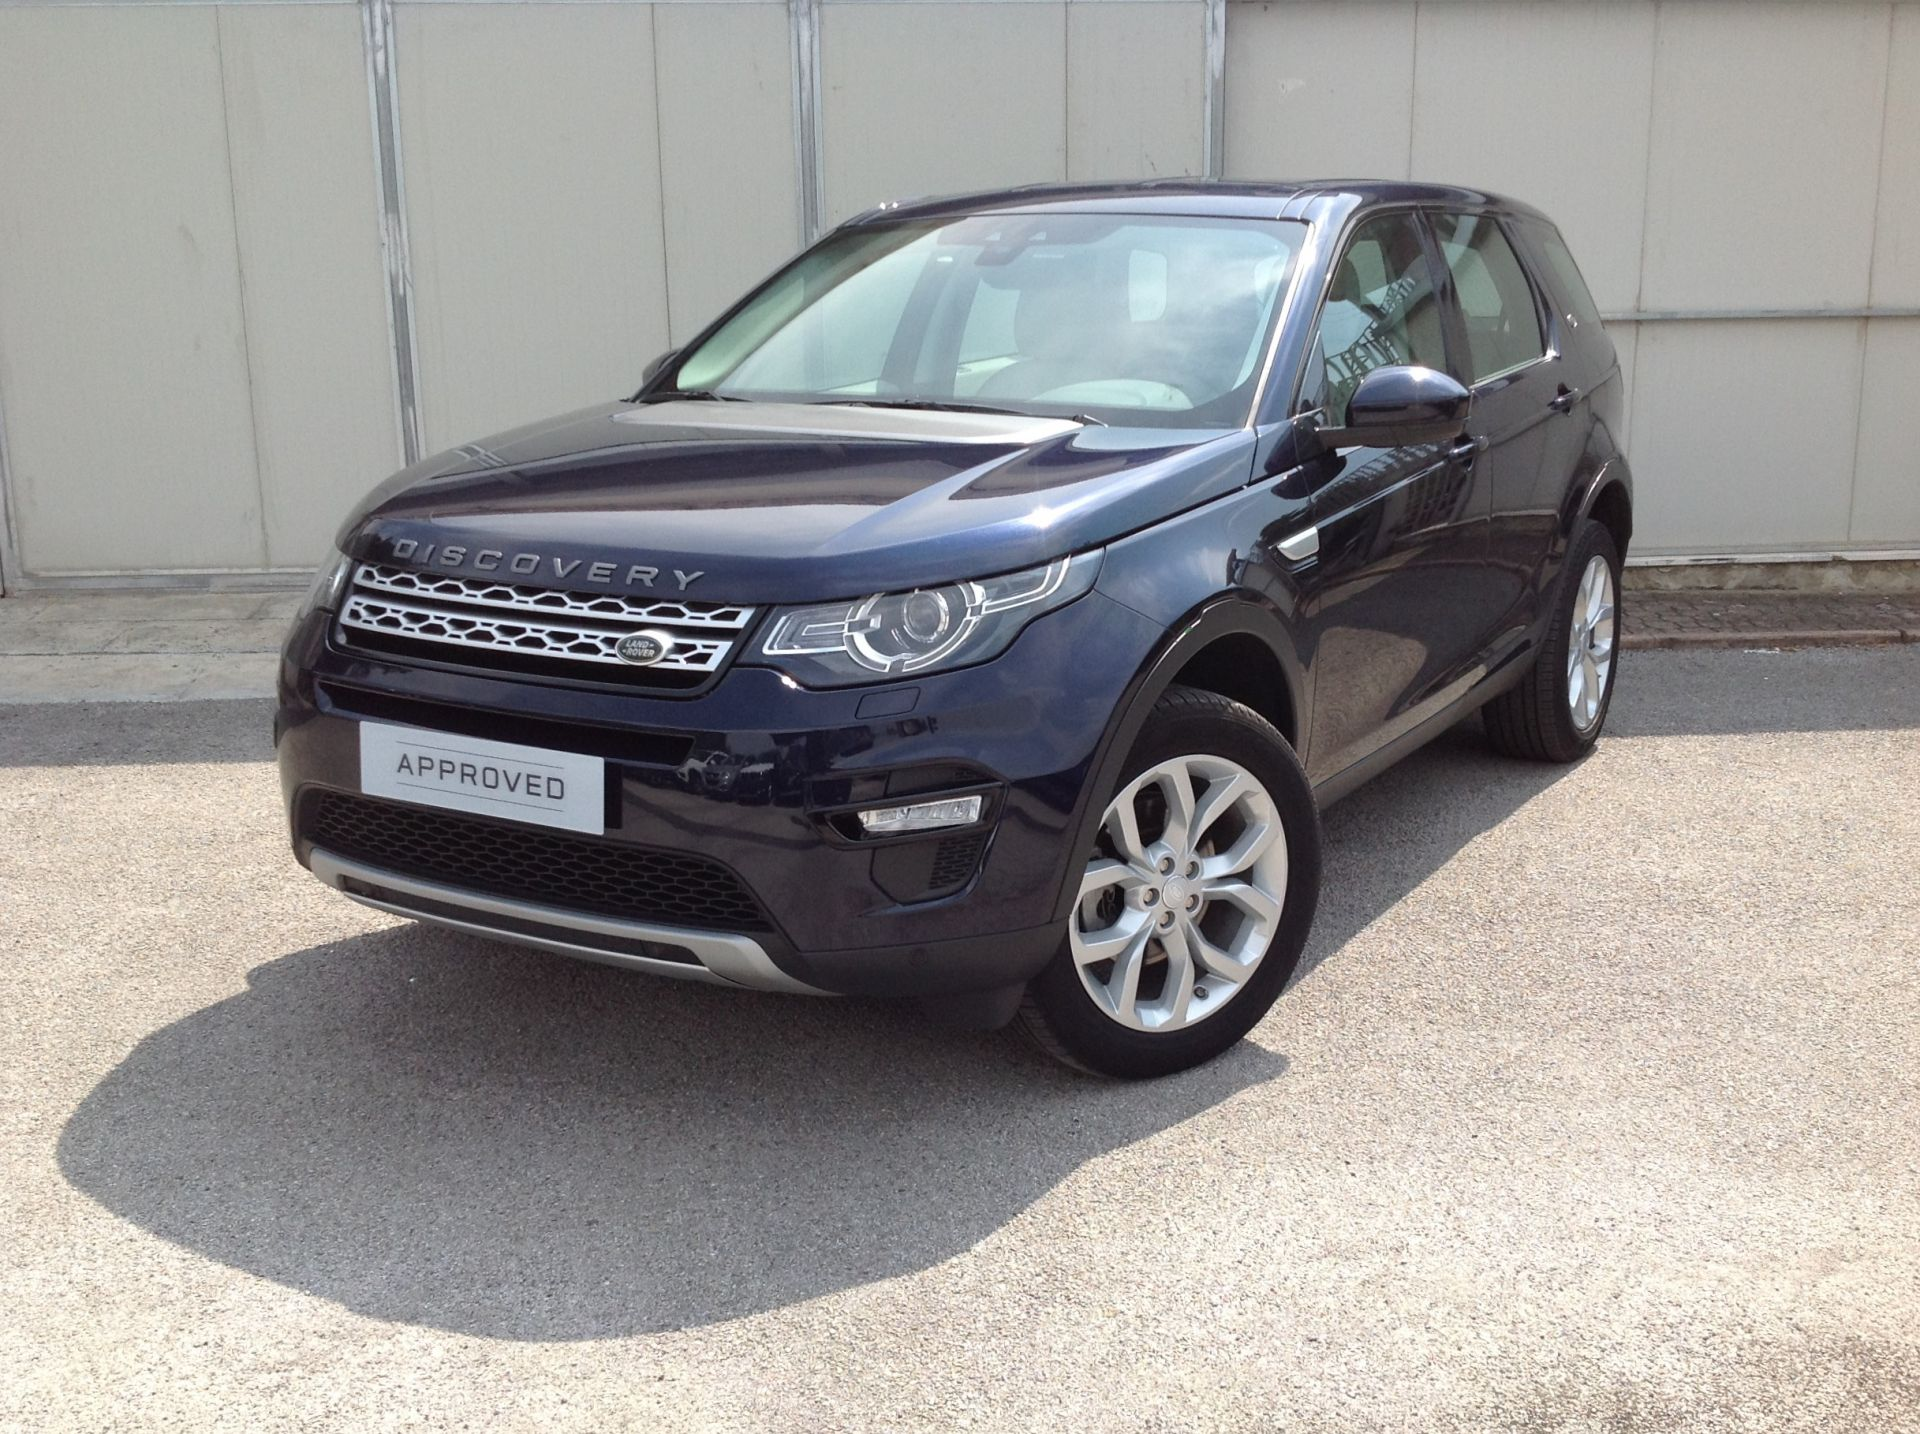 Land Rover Discovery Sport Discovery Sport 2.0 TD4 150 CV HSE Cambio Automatico